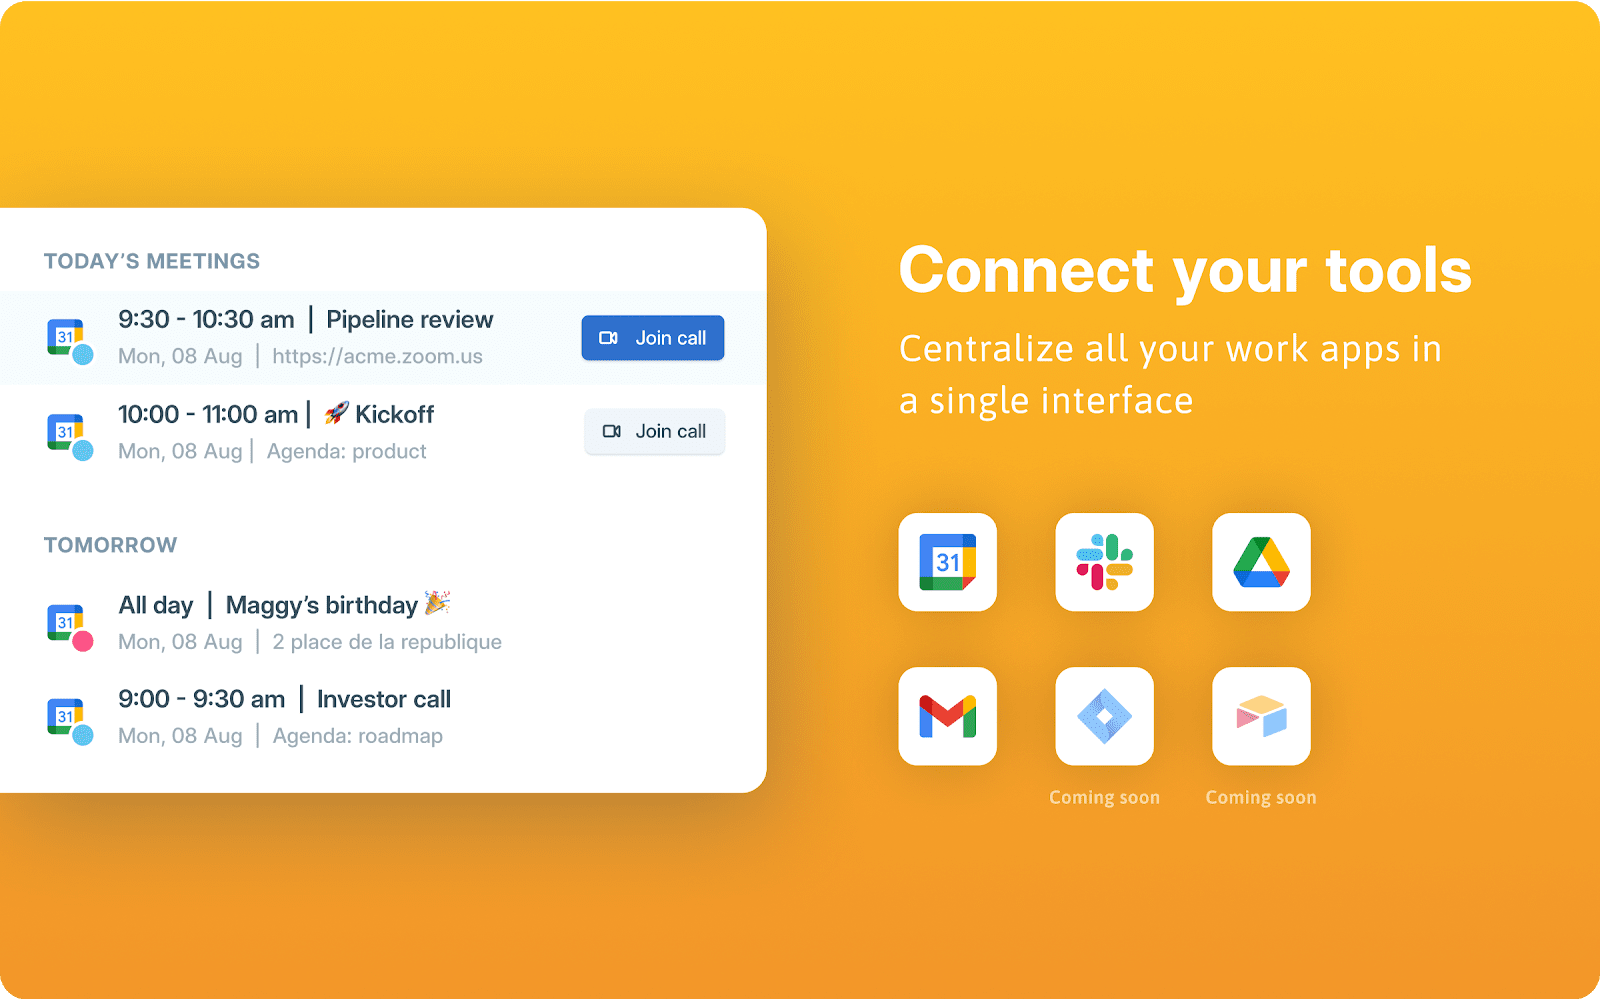 Station Connect Your Tools